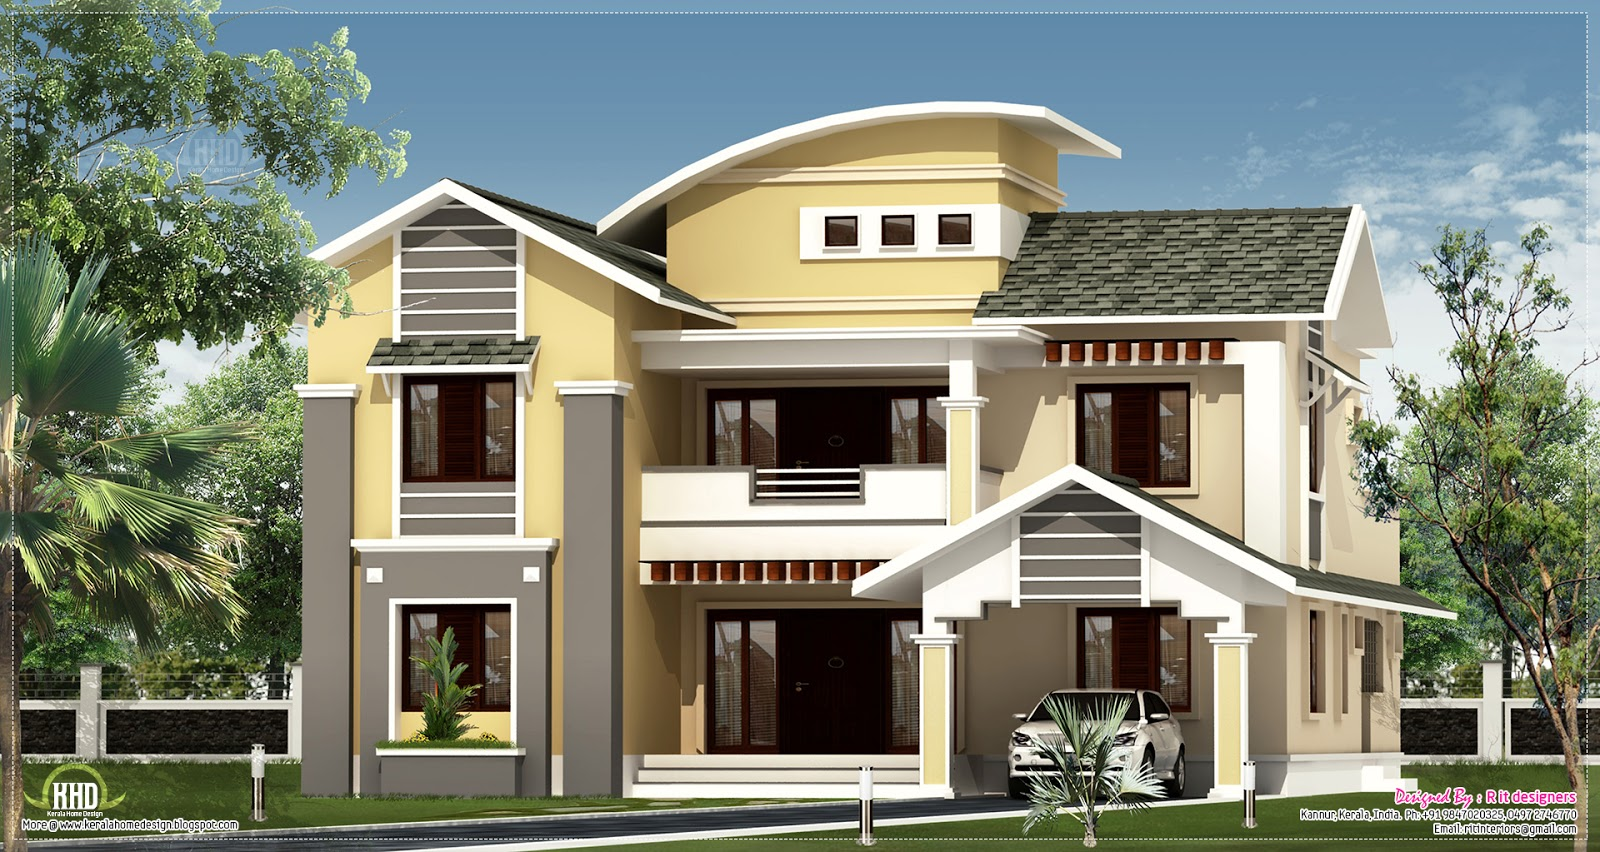 3000 home design from kannur kerala kerala home for Villa architecture design plans